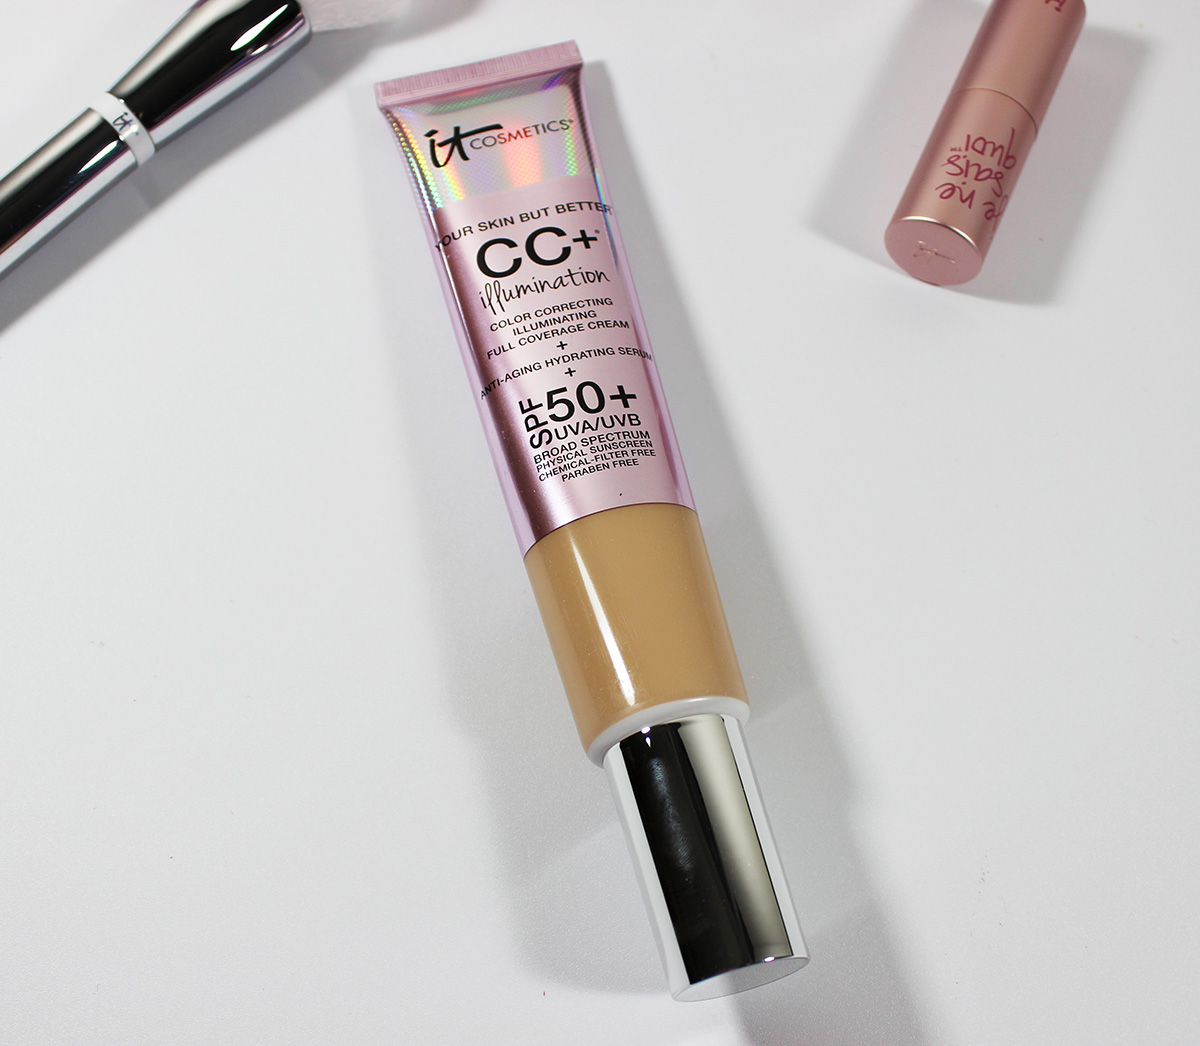 It Cosmetics CC+ Illumination Full Coverage Cream